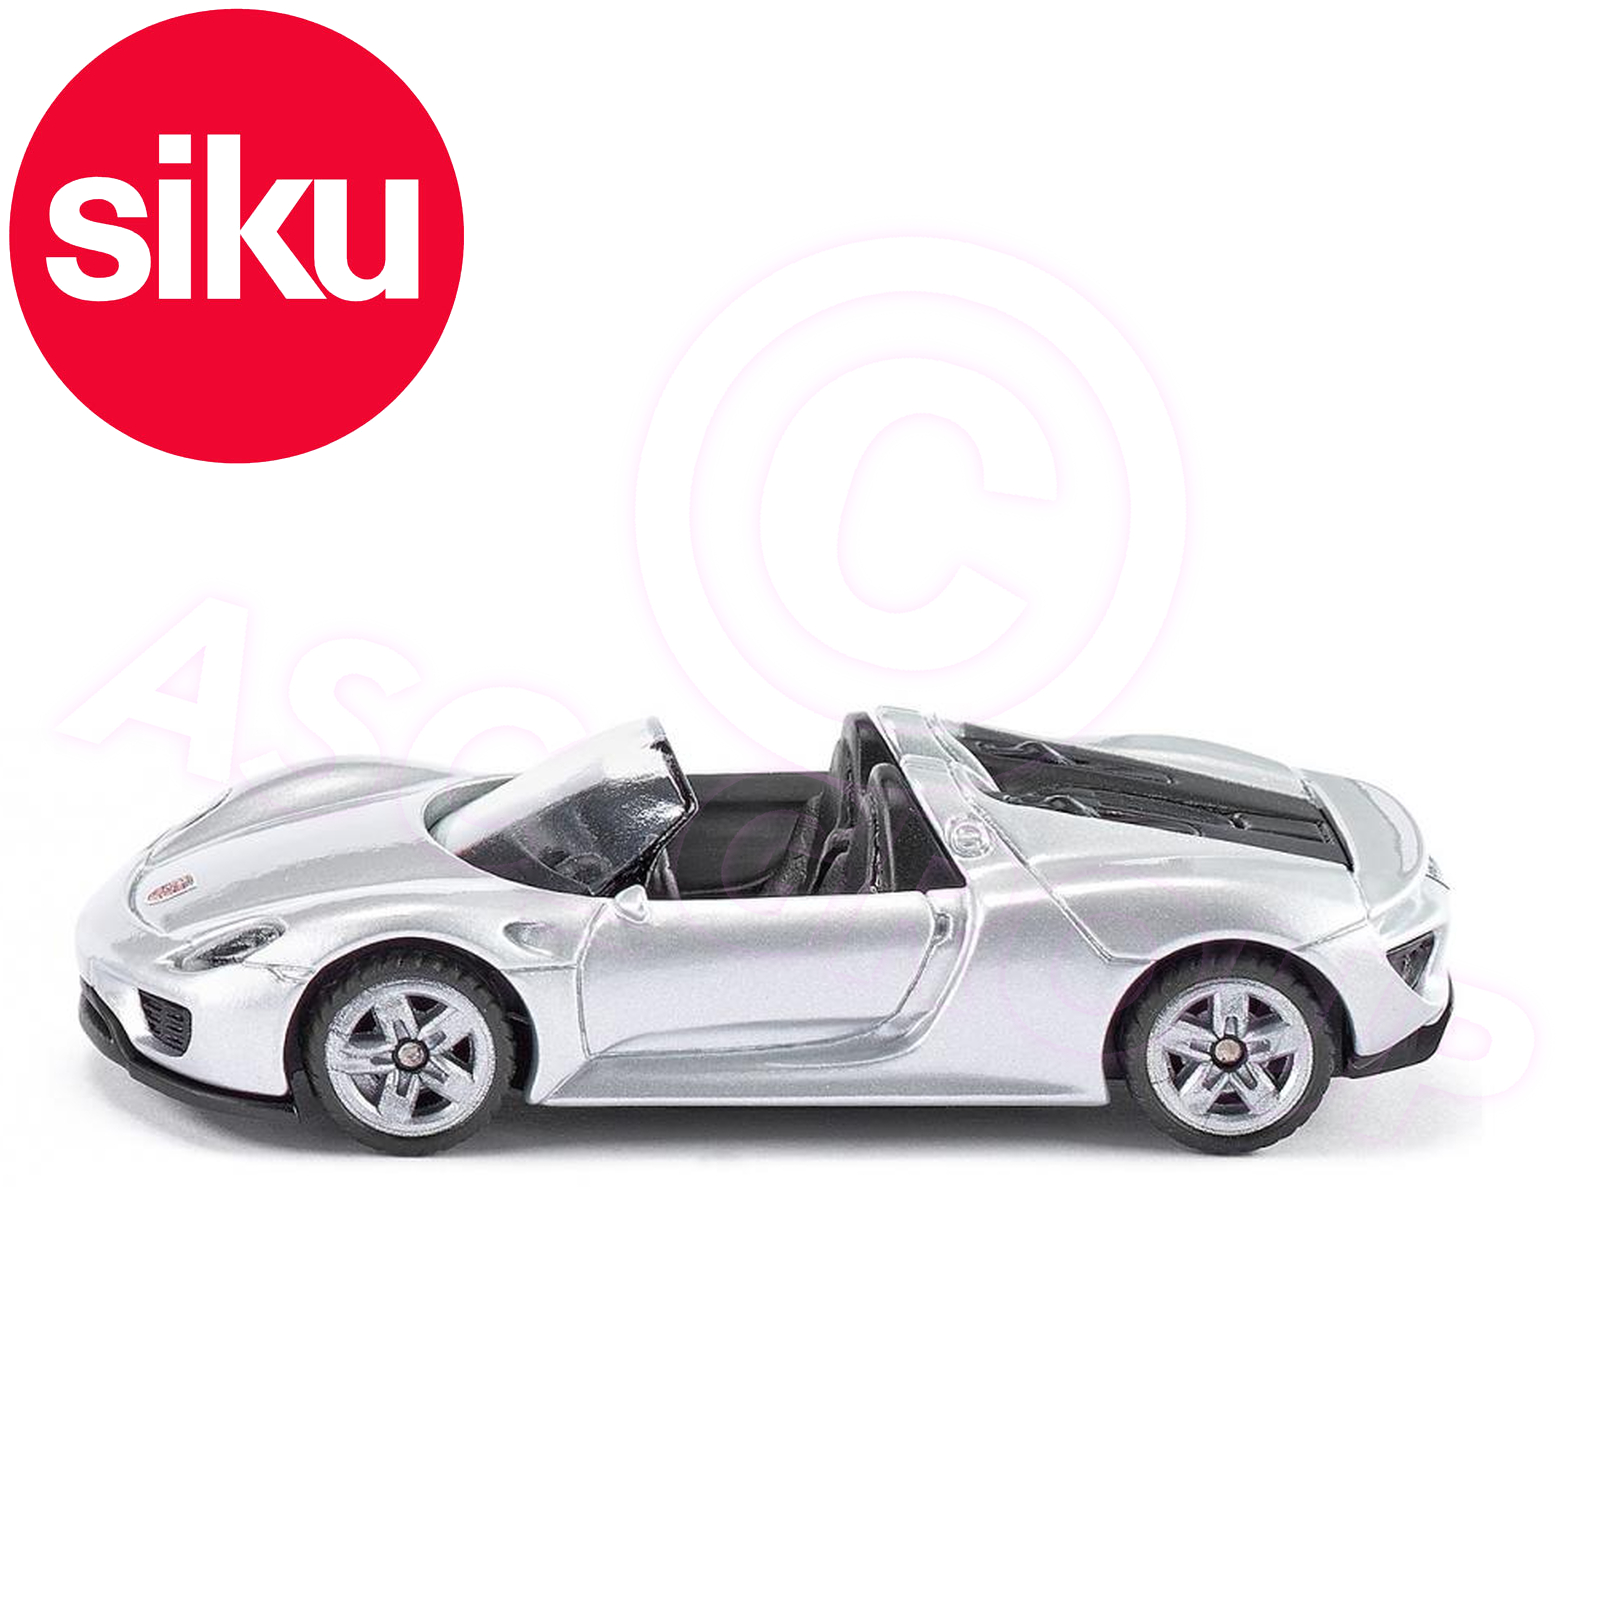 Siku No 1475 Porsche 918 Spyder Convertible Sports Car